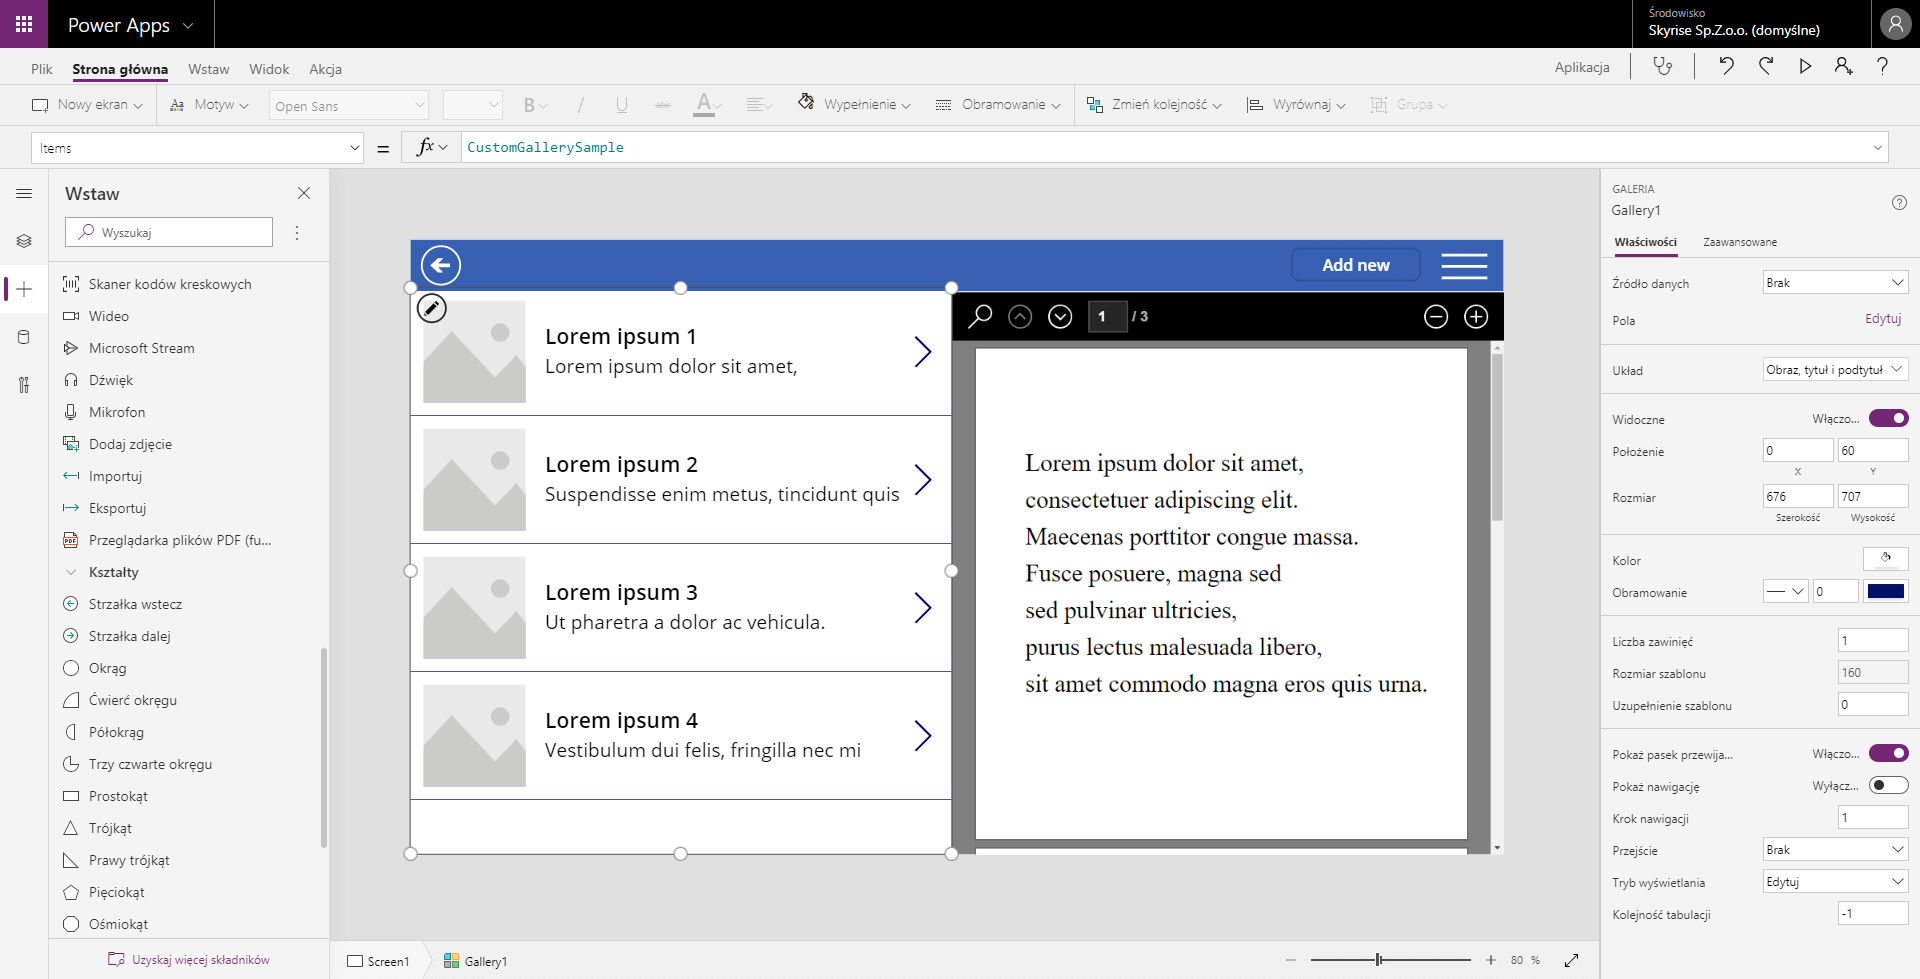 Microsoft-PowerApps-graphical-user-interface